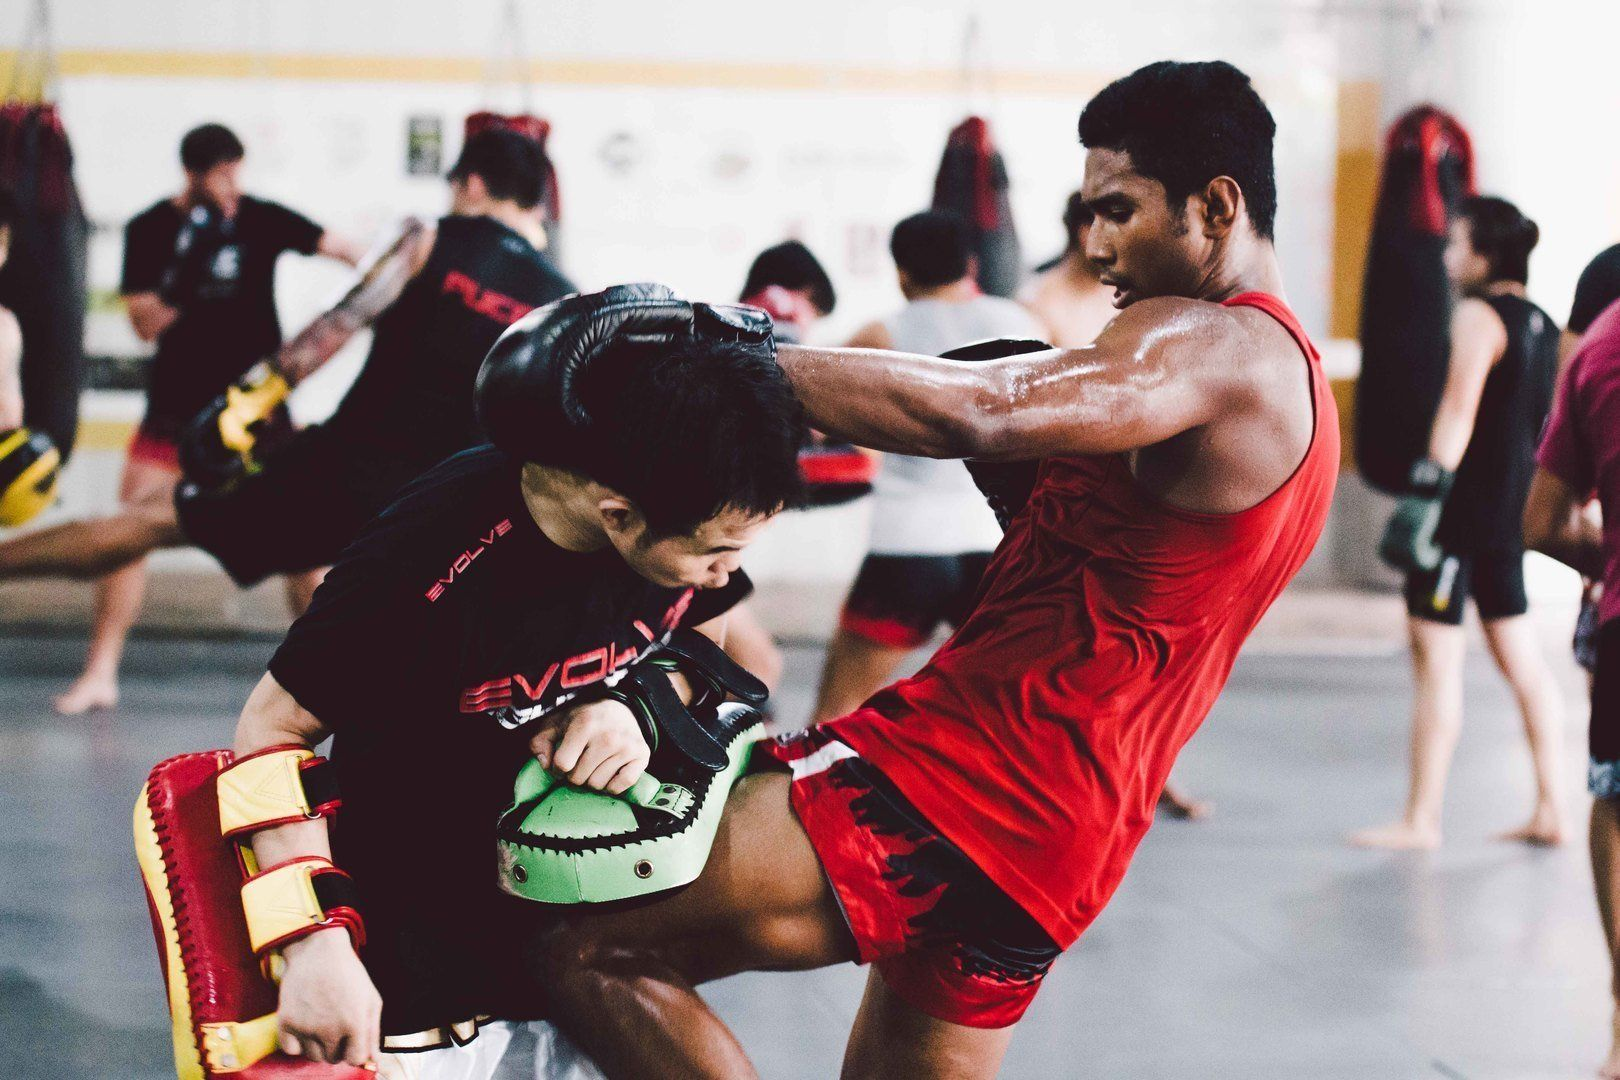 ONE Superstar Amir Khan trains hard at the Evolve Fighters Program.